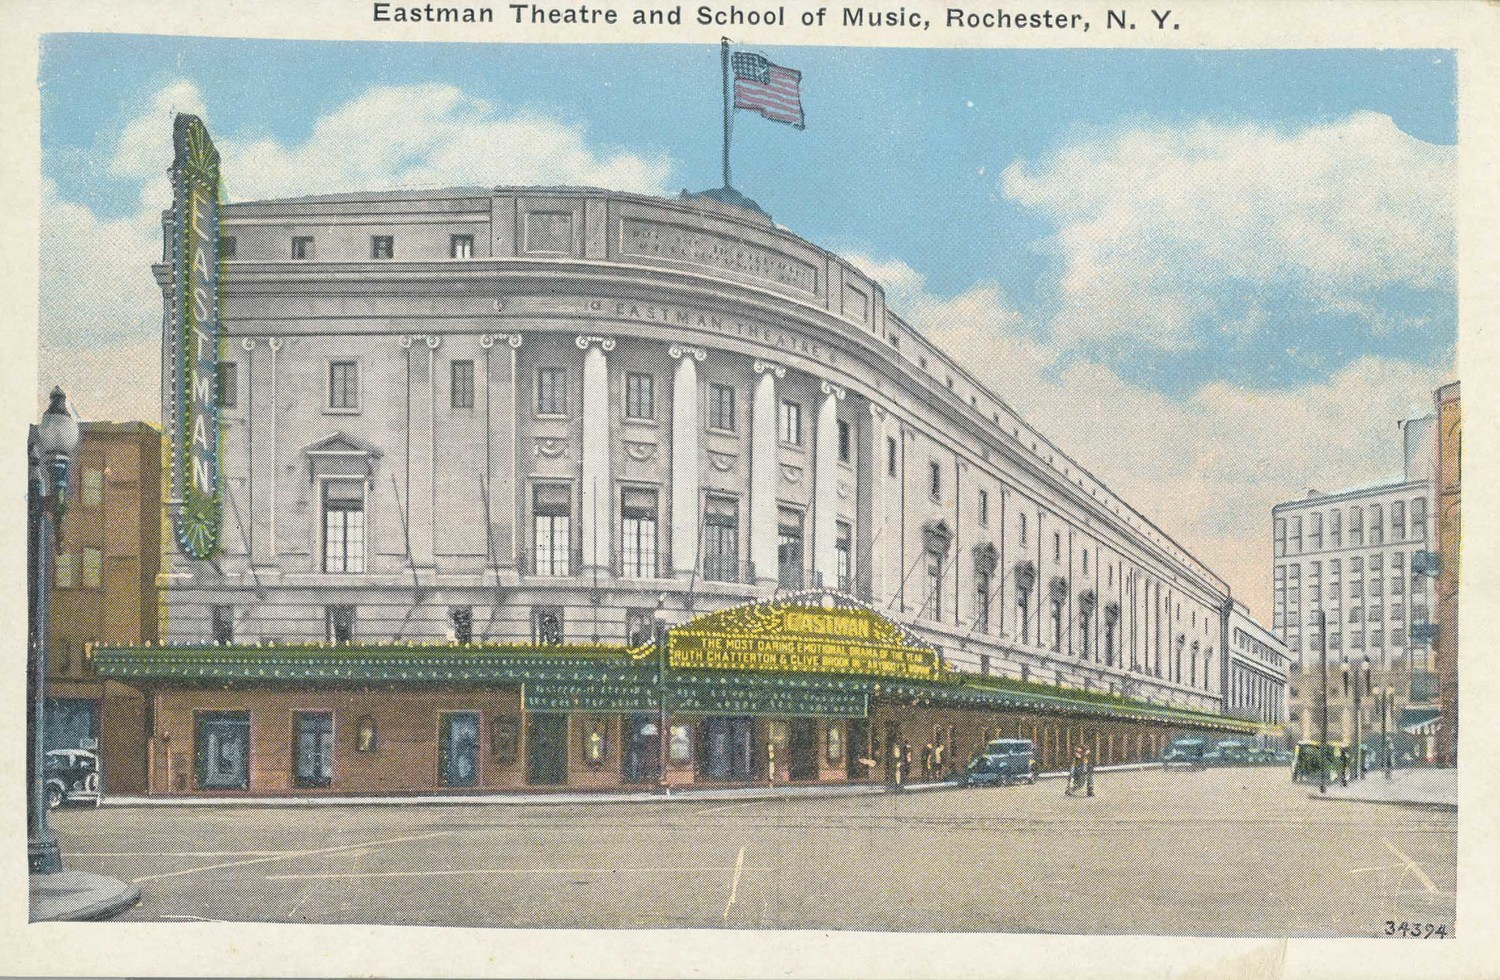 Eastman Theatre and School of Music, Rochester, N.Y.